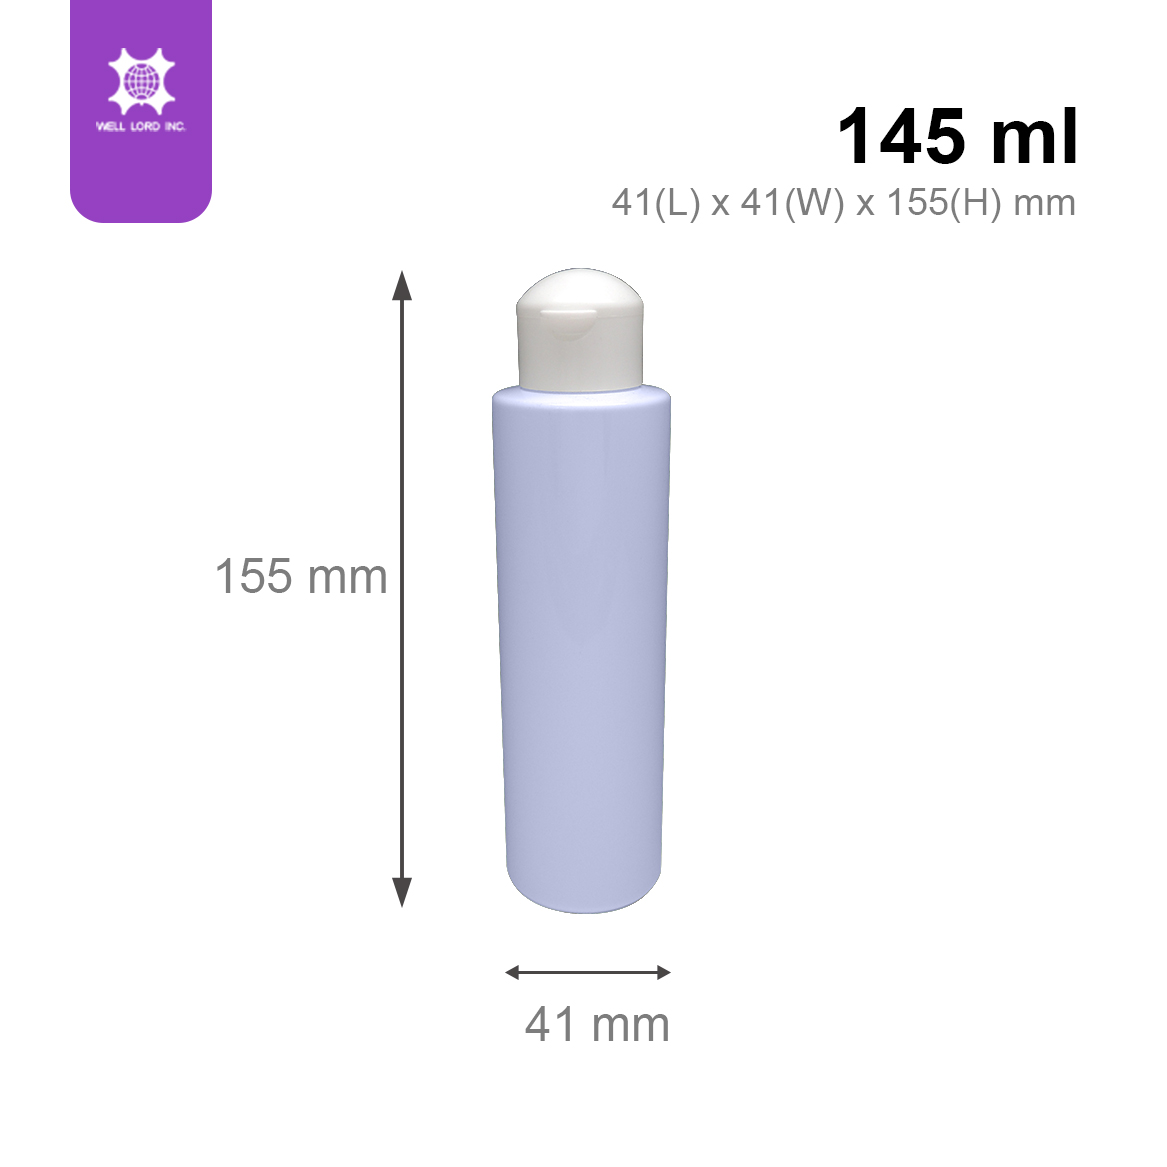 Elegant cornflower blue mushroom shape 145 ml plastic bottle with caps